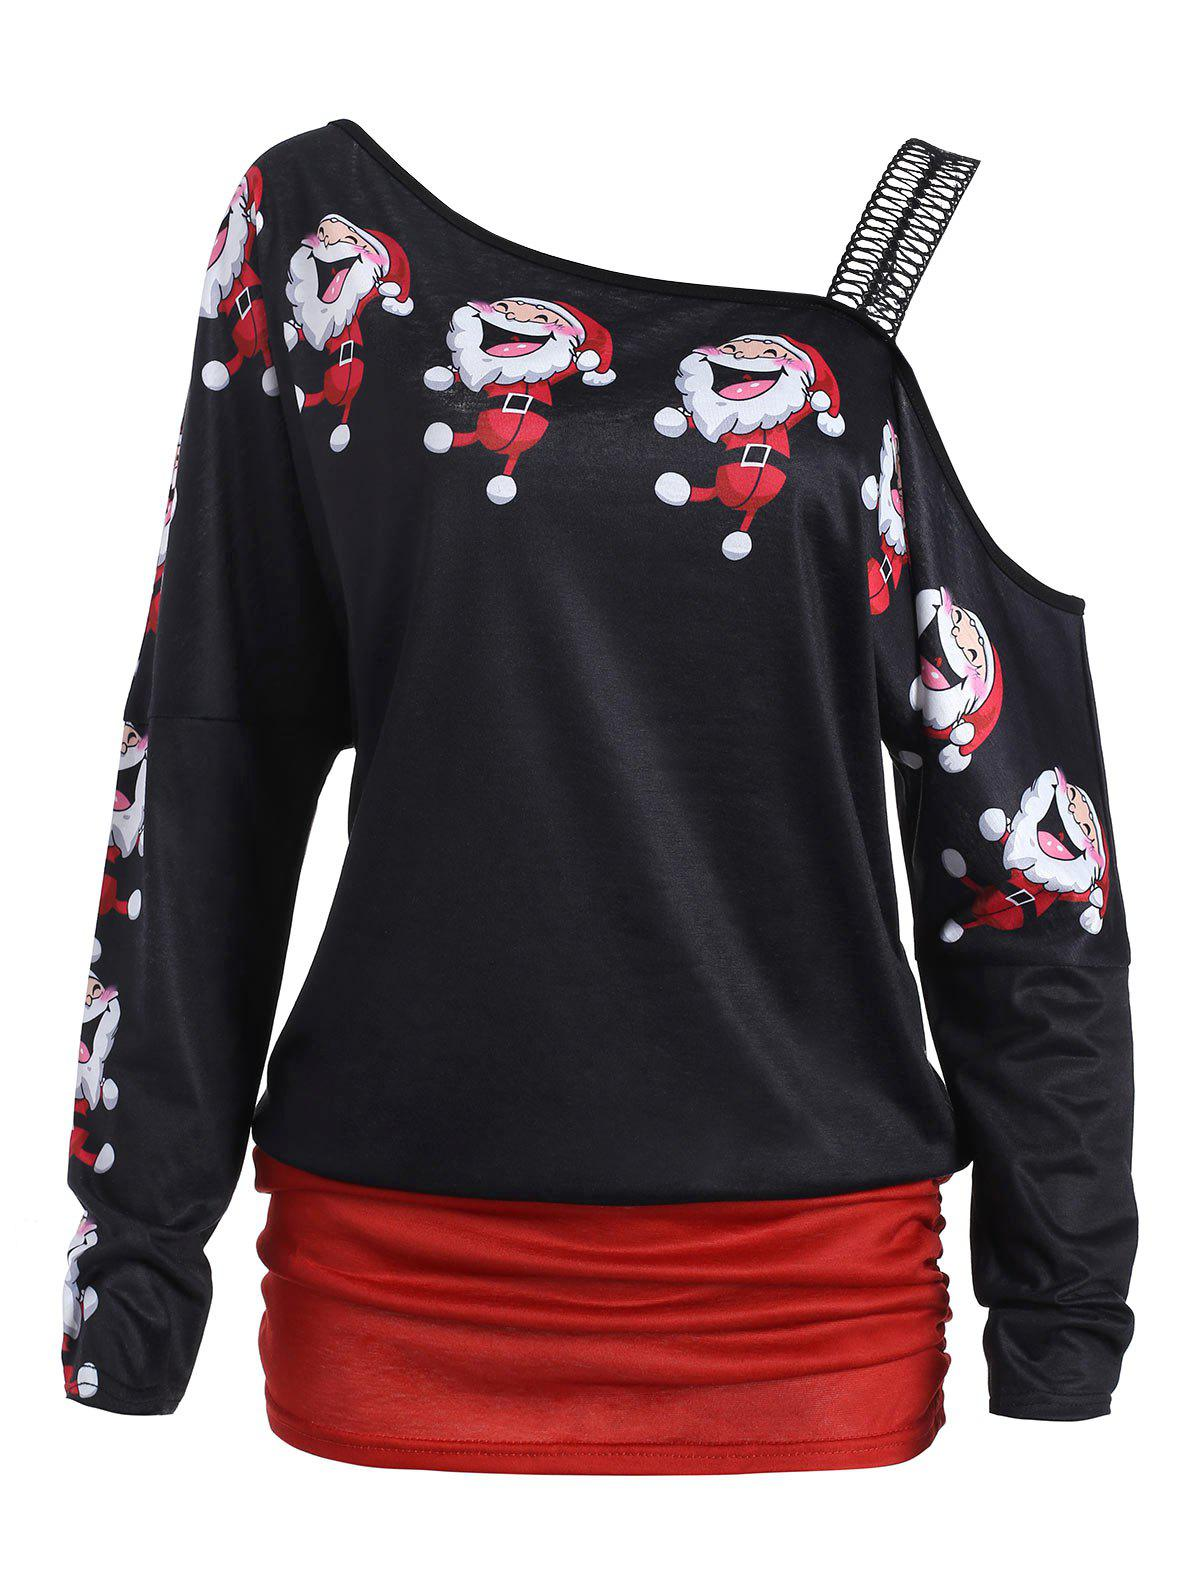 Santa Claus Laugh Print Cold Shoulder T-shirtWOMEN<br><br>Size: XL; Color: BLACK; Material: Polyester; Shirt Length: Regular; Sleeve Length: Full; Collar: Round Neck; Style: Fashion; Sleeve Type: Cold Shoulder; Pattern Type: Cartoon,Print; Season: Fall,Spring,Winter; Weight: 0.2200kg; Package Contents: 1 x T-shirt;